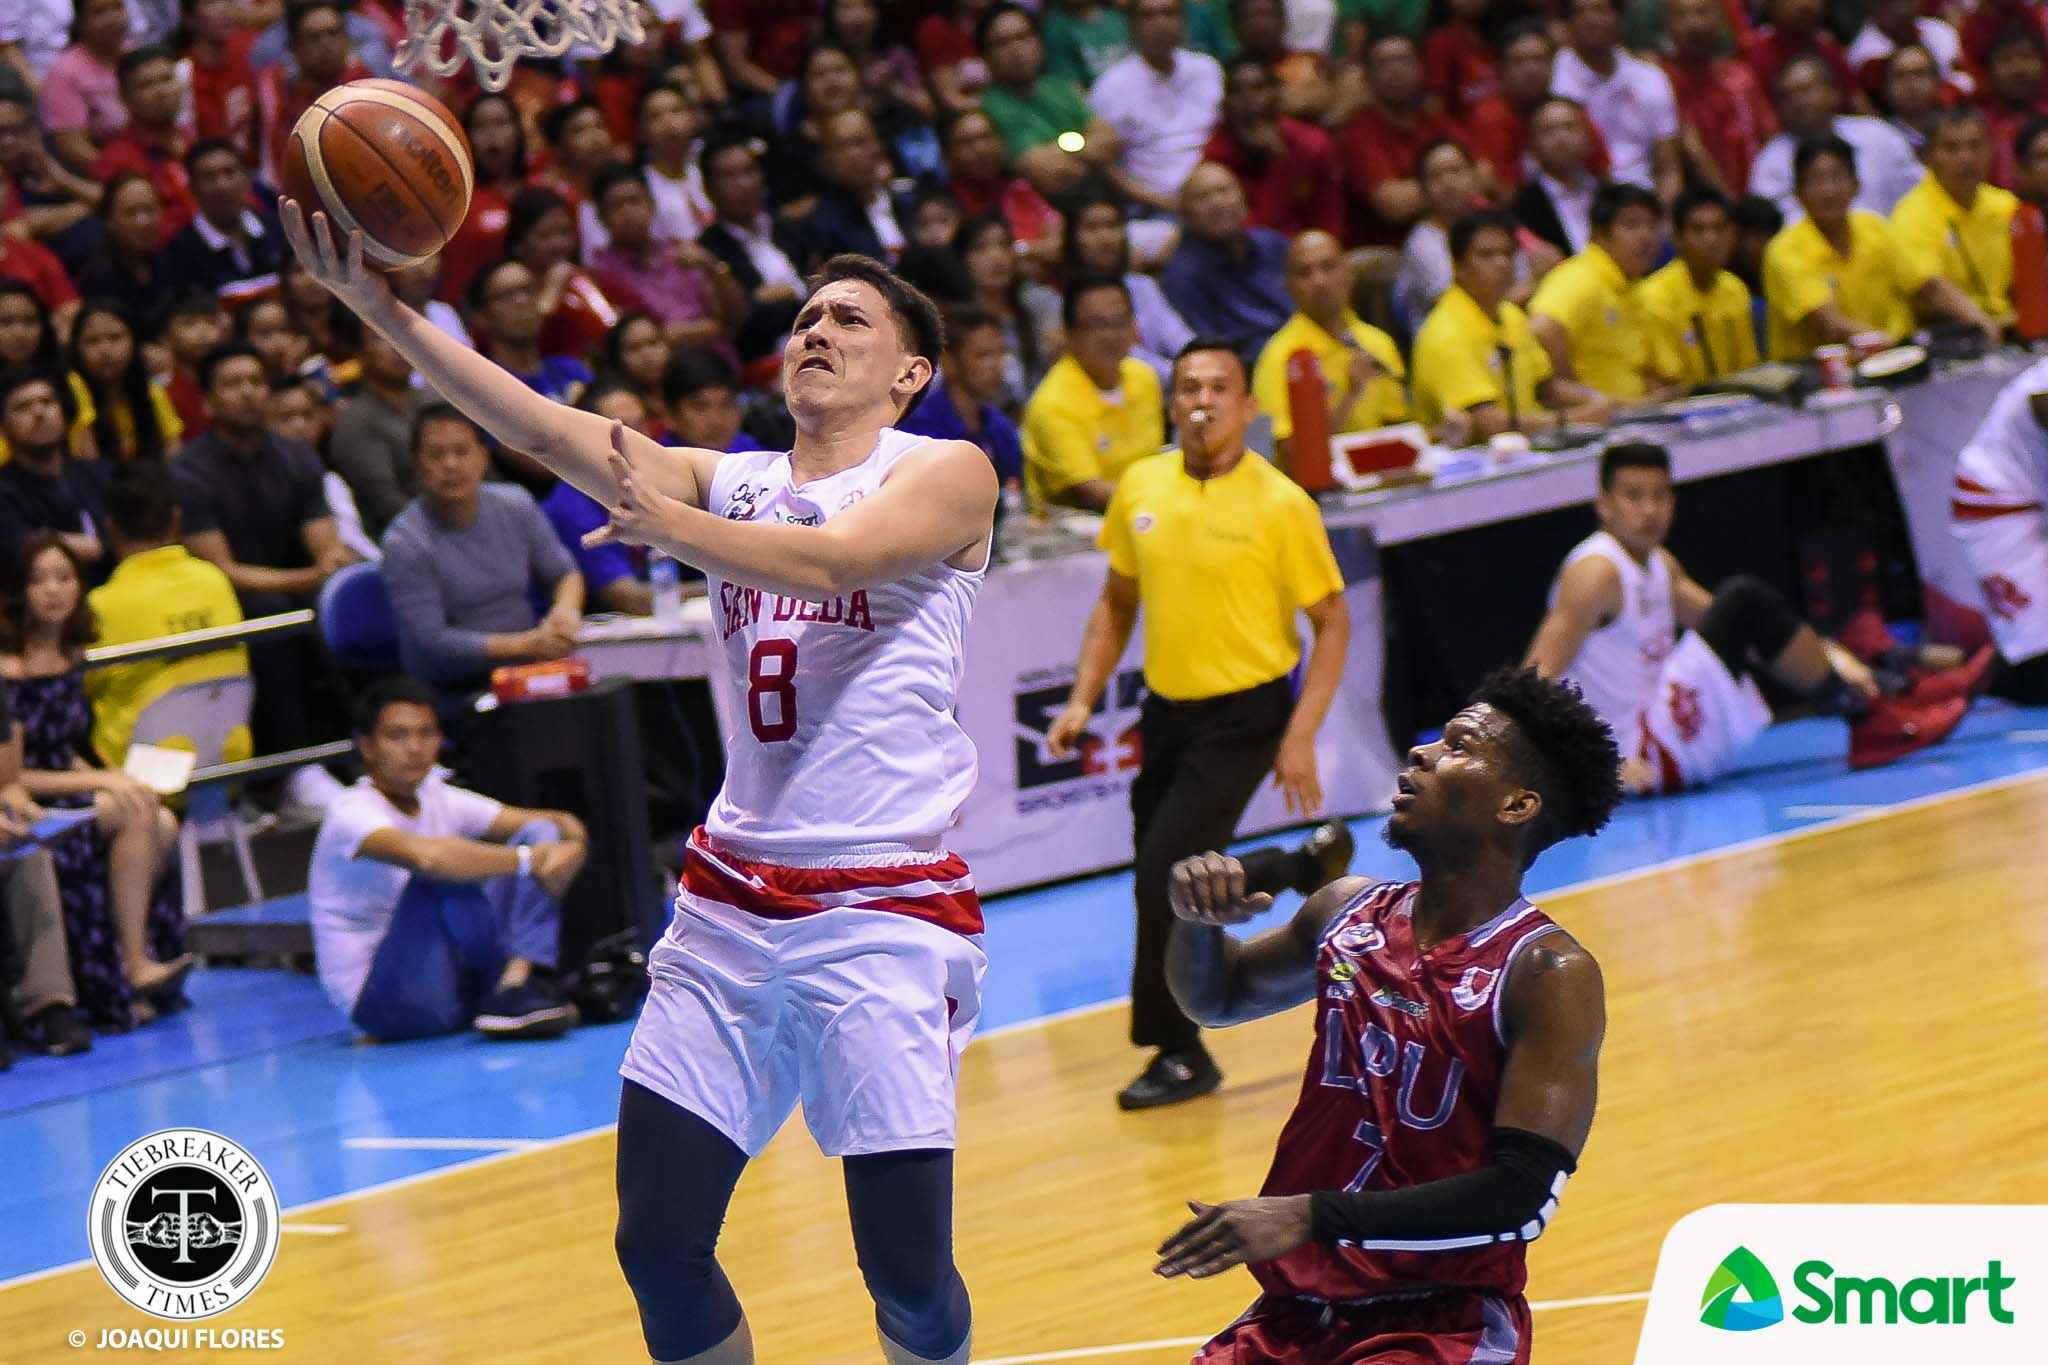 Philippine Sports News - Tiebreaker Times Aby Maraño proud to see Robert Bolick rise from benchwarmer to two-time NCAA champion Basketball NCAA News PSL SBC Volleyball  San Beda Seniors Basketball Robert Bolick NCAA Season 93 Seniors Basketball NCAA Season 93 F2 Logistics Cargo Movers Aby Marano 2017 PSL Season 2017 PSL Grand Prix